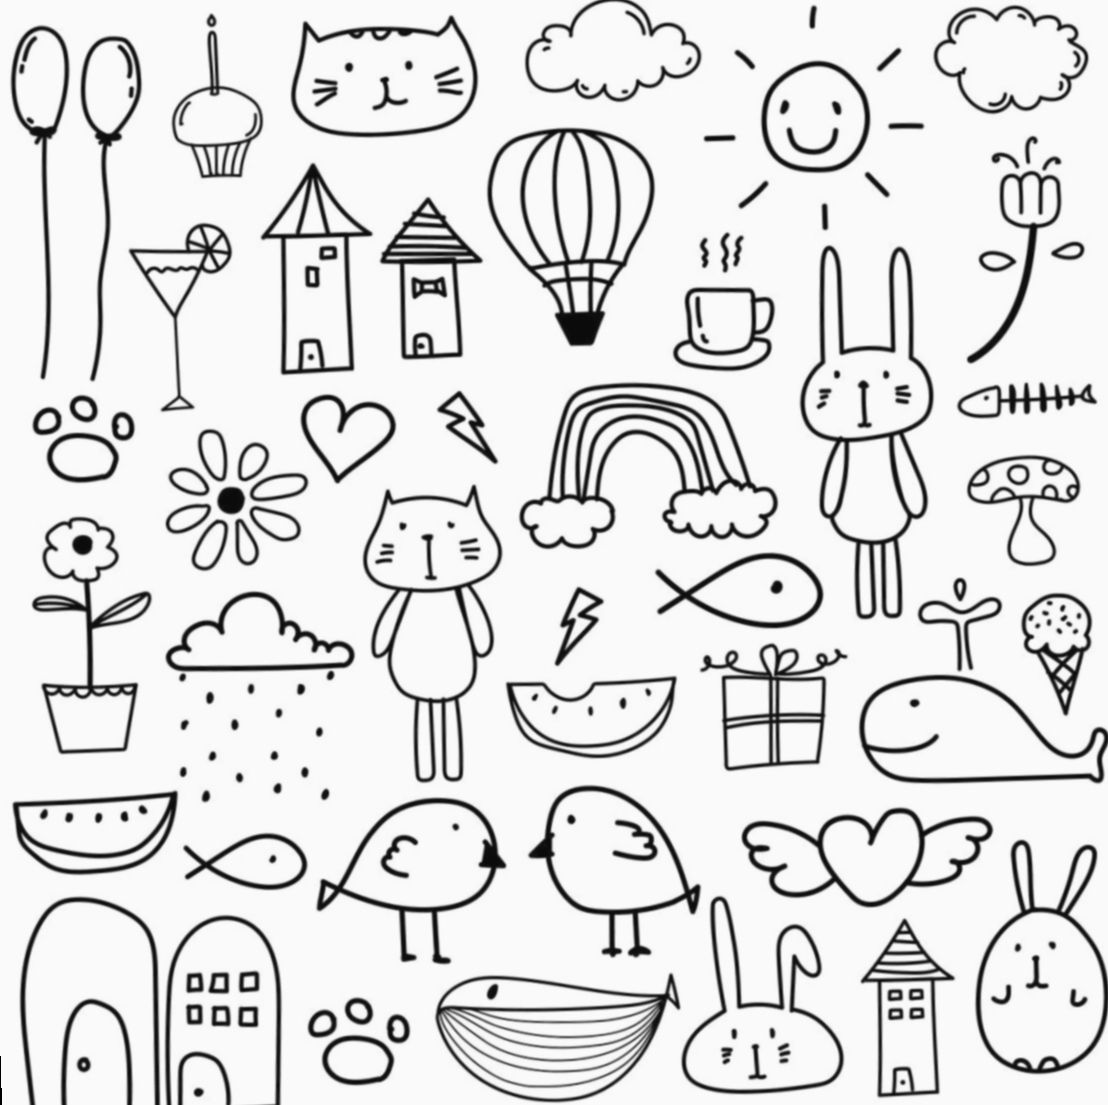 Pin By Ana Hernandez On 2020 Projects With Images Kids Doodles